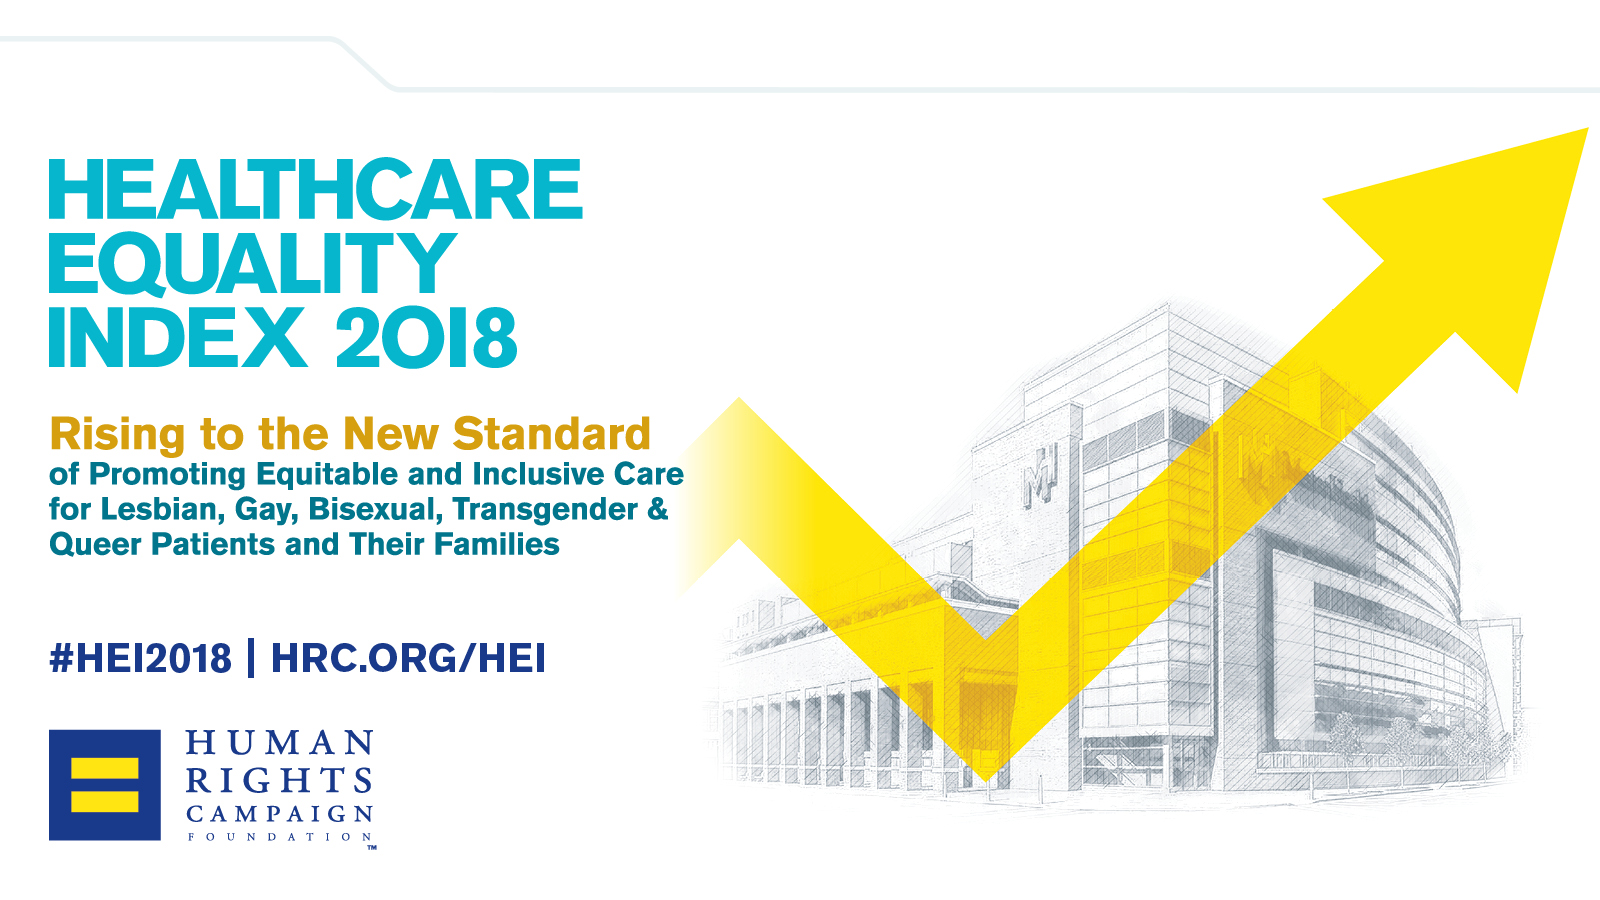 Healthcare Equality Index 2018 Human Rights Campaign